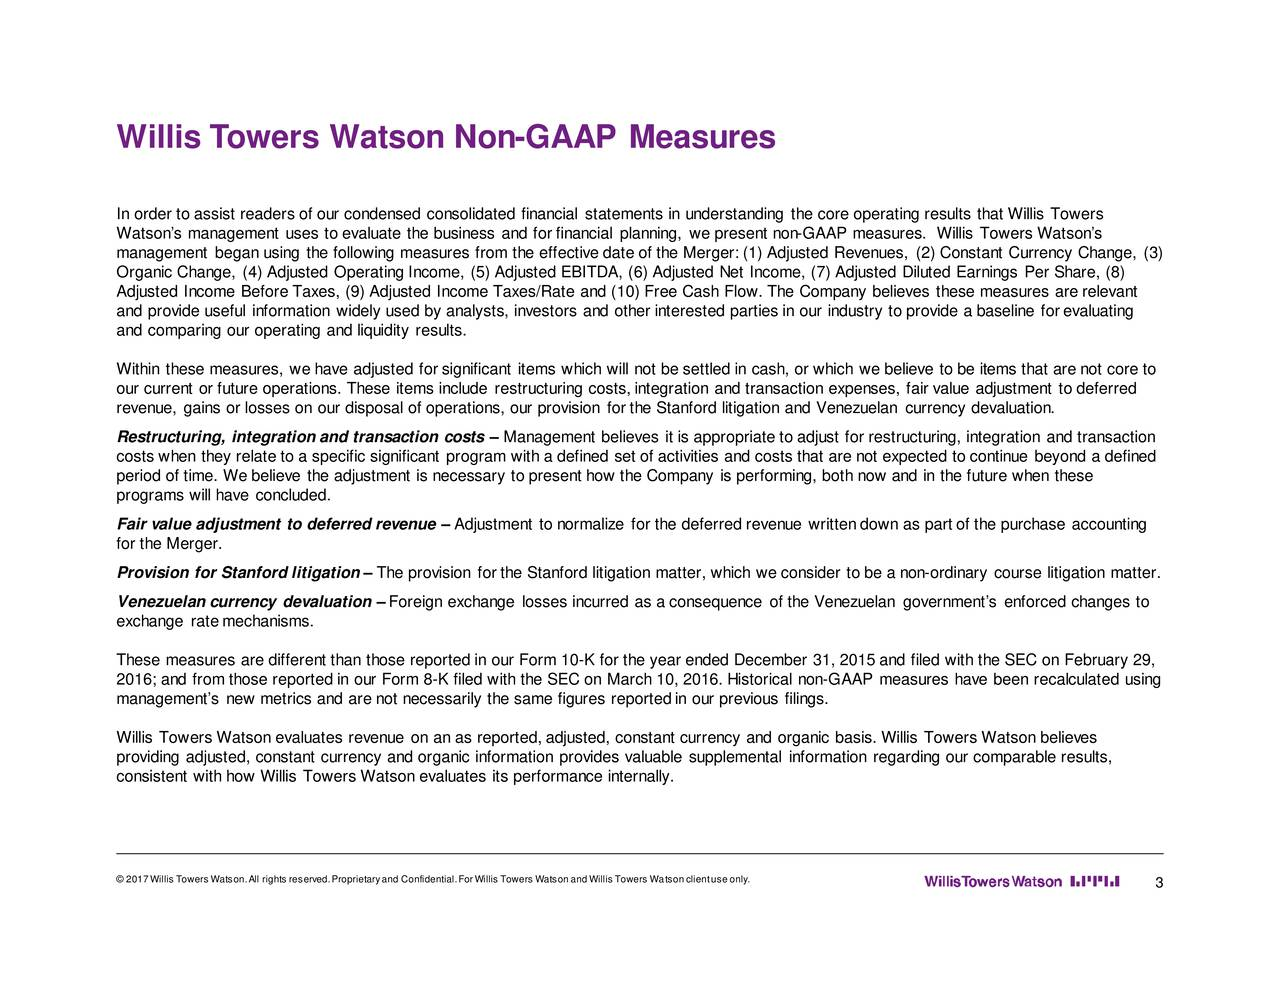 In order to assist readers of our condensed consolidated financial statements in understanding the core operating resulttstilis Towers Watsons management uses to evaluate the business and for financial planning, we present no-nGAAP measures. Willis Towers Watsn os management beganusing the following measures from the effectivedateof the Merger:(1) Adjusted Revenues, (2) Constant Curr ency Change, (3) Organic Change, (4)Adjusted Operating Income, (5) Adjusted EBITDA, (6) Adjusted Net Income, (7) Adjusted Diluted Earnings Per S hare, (8) Adjusted Income Before Taxes, (9) Adjusted Income Taxes/Rate and (10) Free Cash Flow. The Company believes these measures are relevant and provide useful information widely used by analysts, investors and other interested parties in our industry to provide a b aseline forevaluating and comparing our operating and liquidity results. Within these measures, we have adjusted for significant items which will not be settled in cash, or which we believe to t s that are not core to our current or future operations. These items include restructuring costs, integration and transaction expenses, fair value a djustment to deferred revenue, gains or losses on our disposal of operations, our provision for the Stanford litigation and Venezuelan currencylevtion. Restructuring, integrationand transaction costs  Management believes it is appropriate to adjust for restructuring, integration and transaction costs when they relate to a specific significant program with a defined set of activities and costs that are not expected to continue beyond a defined period of time. We believe the adjustment is necessary to present how the Company is performing, both now and in the future w hen these programs will have concluded. Fair value adjustment to deferred revenue  Adjustment to normalize for the deferred revenue writtendown as partof the purchase accounting for the Merger. Provision for Stanford litigation  The provision forthe Stanford litigation matter, wh